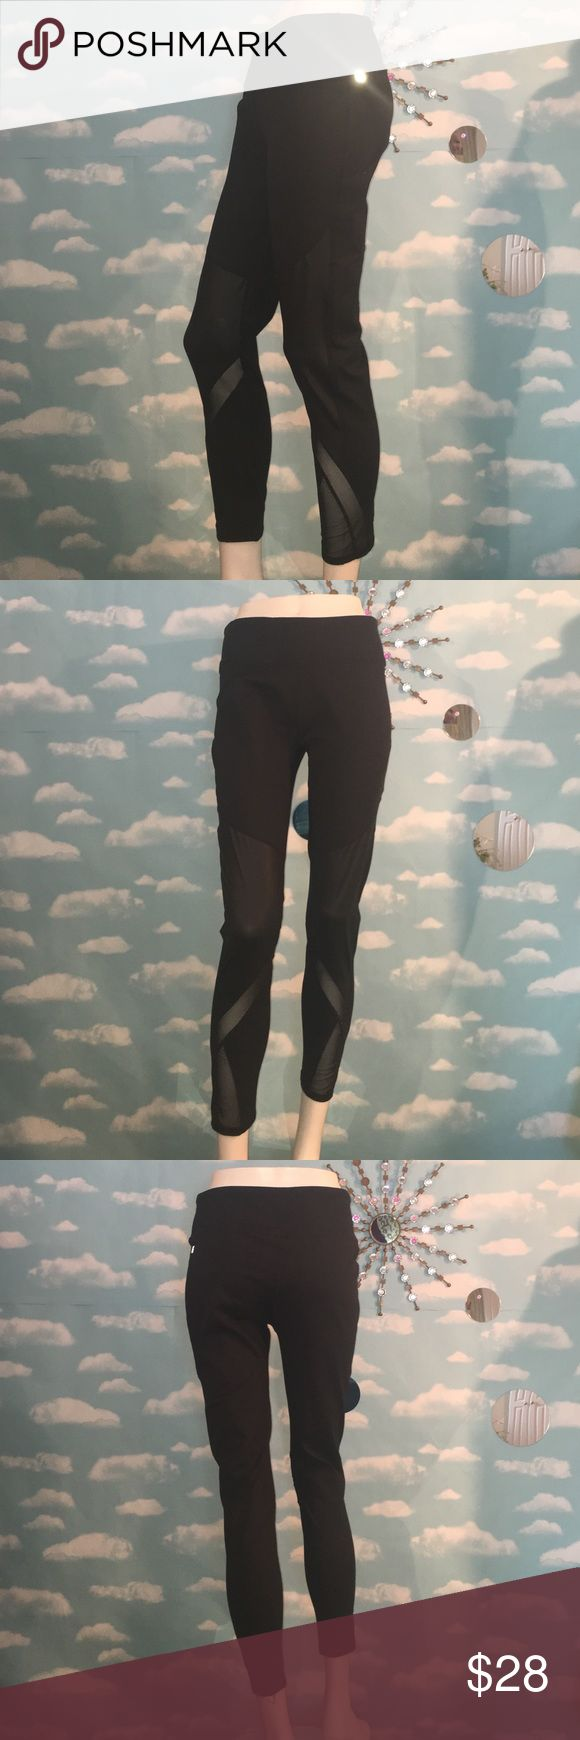 """Fabletics Crops New! Tags have been removed, beautiful black Fabletics Crops with mesh design on lower leg, also has a black, shiny patch of fabric on each leg that looks like leather! Size large, tight fit, inseam is approximately 26"""".  🚫No Trading please, Posh rules only, reasonable offers welcome! Thanks for looking! Fabletics Pants"""